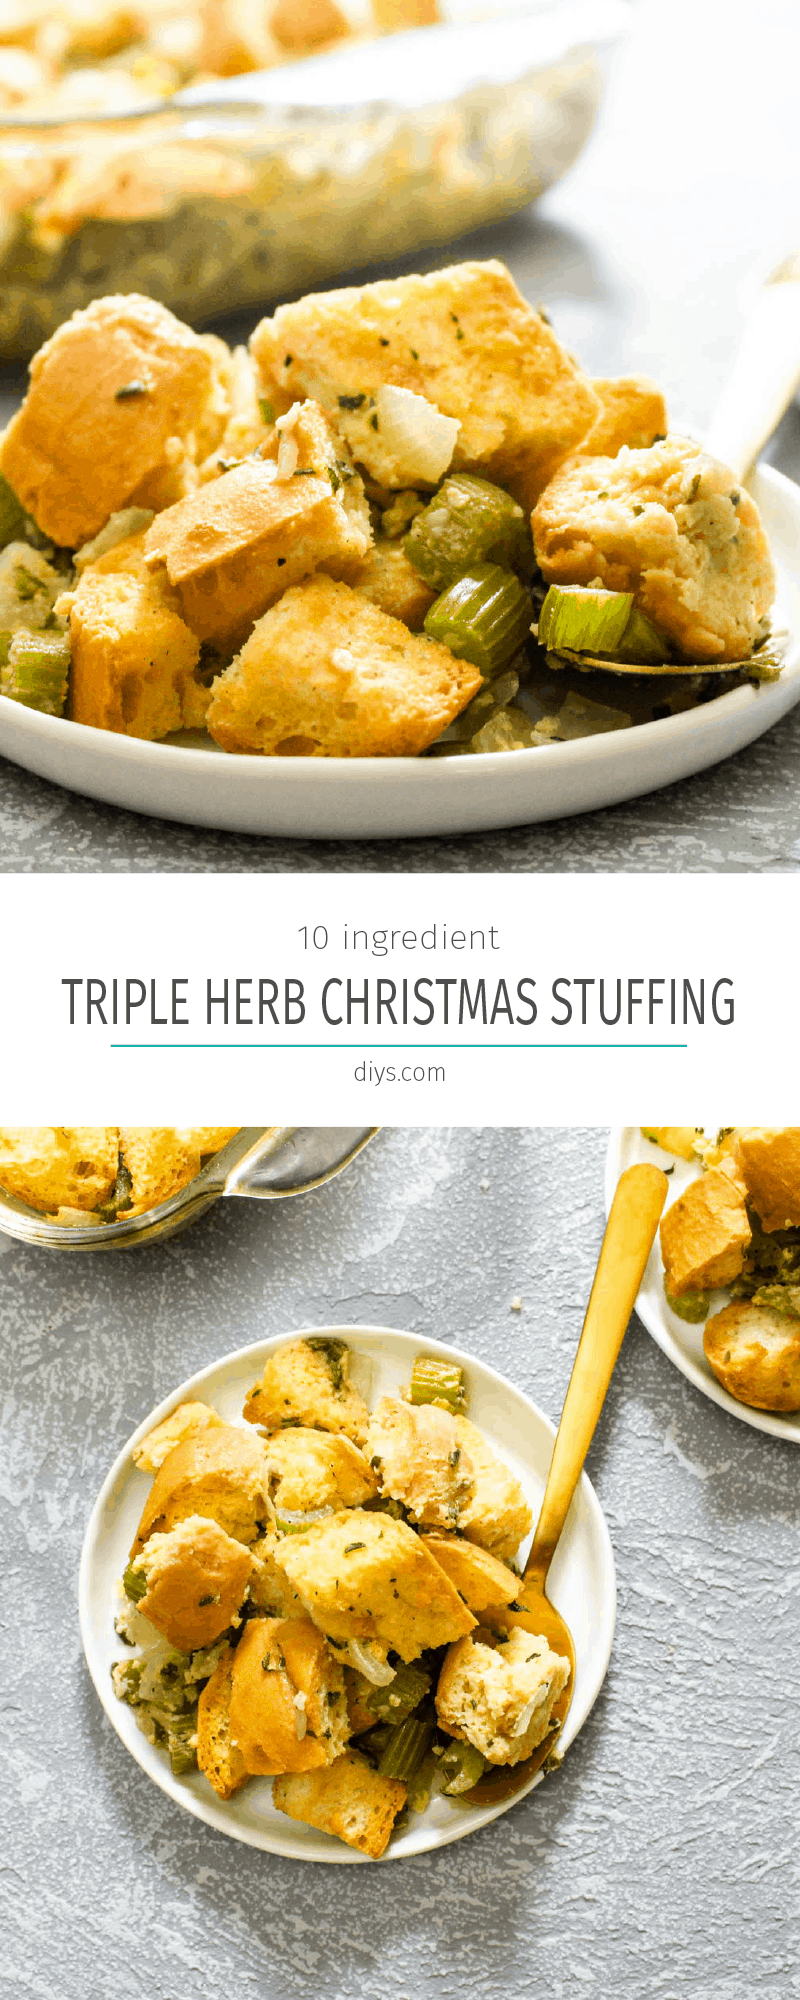 Triple herb christmas stuffing collage